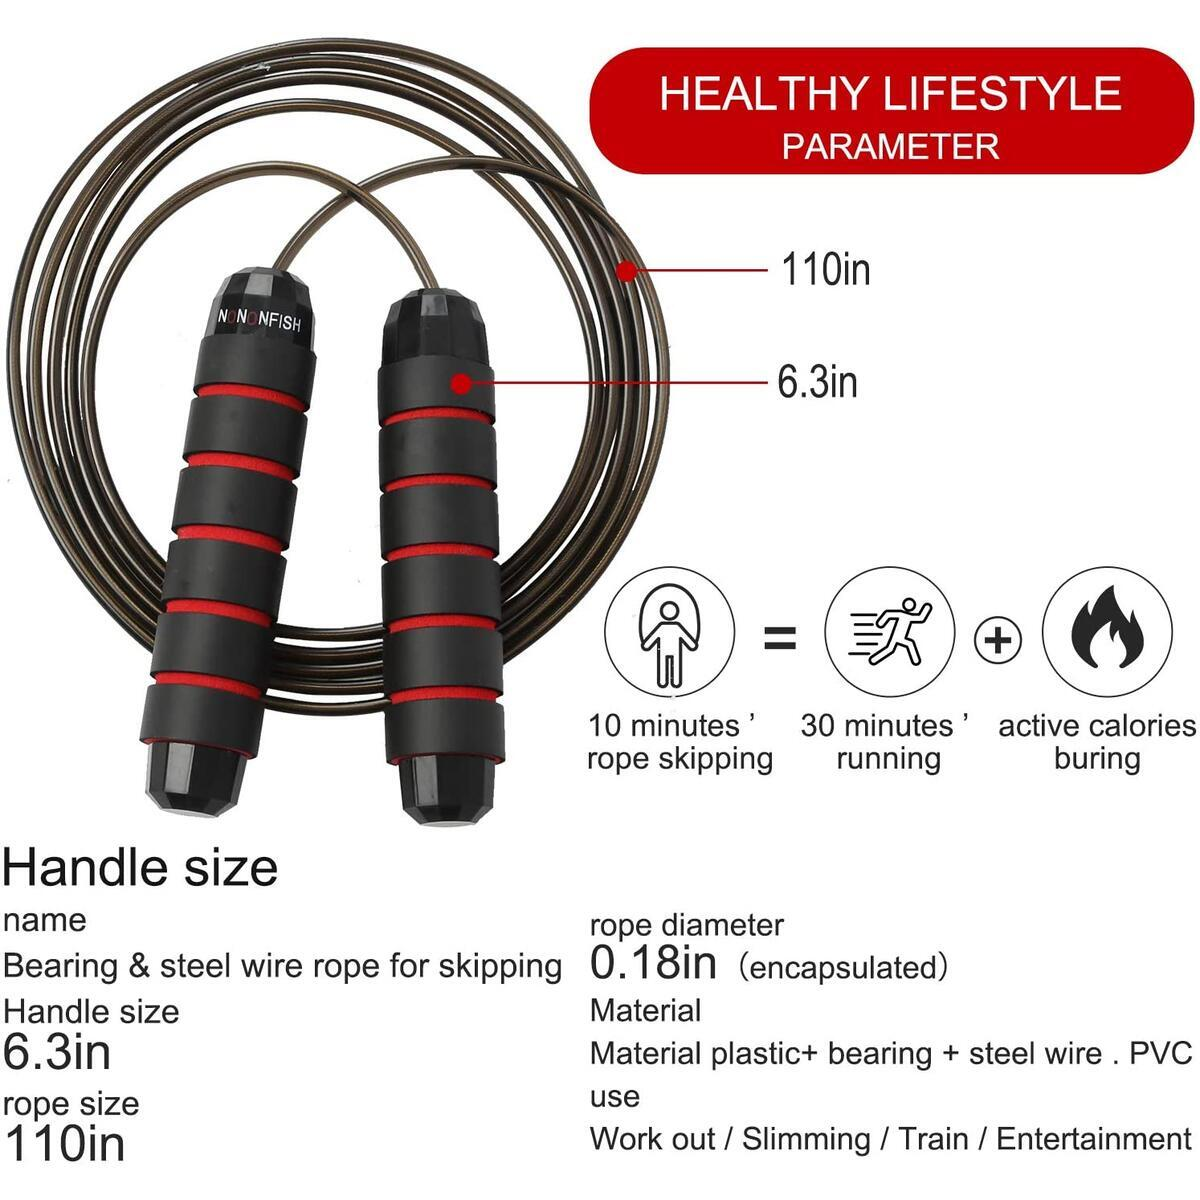 Nononfish Jump Rope Tangle-Free For Fitness Exercises with Ball Bearings Cable, Adjustable Skipping Rope Workout With Memory Foam Handles For Kids Women Men